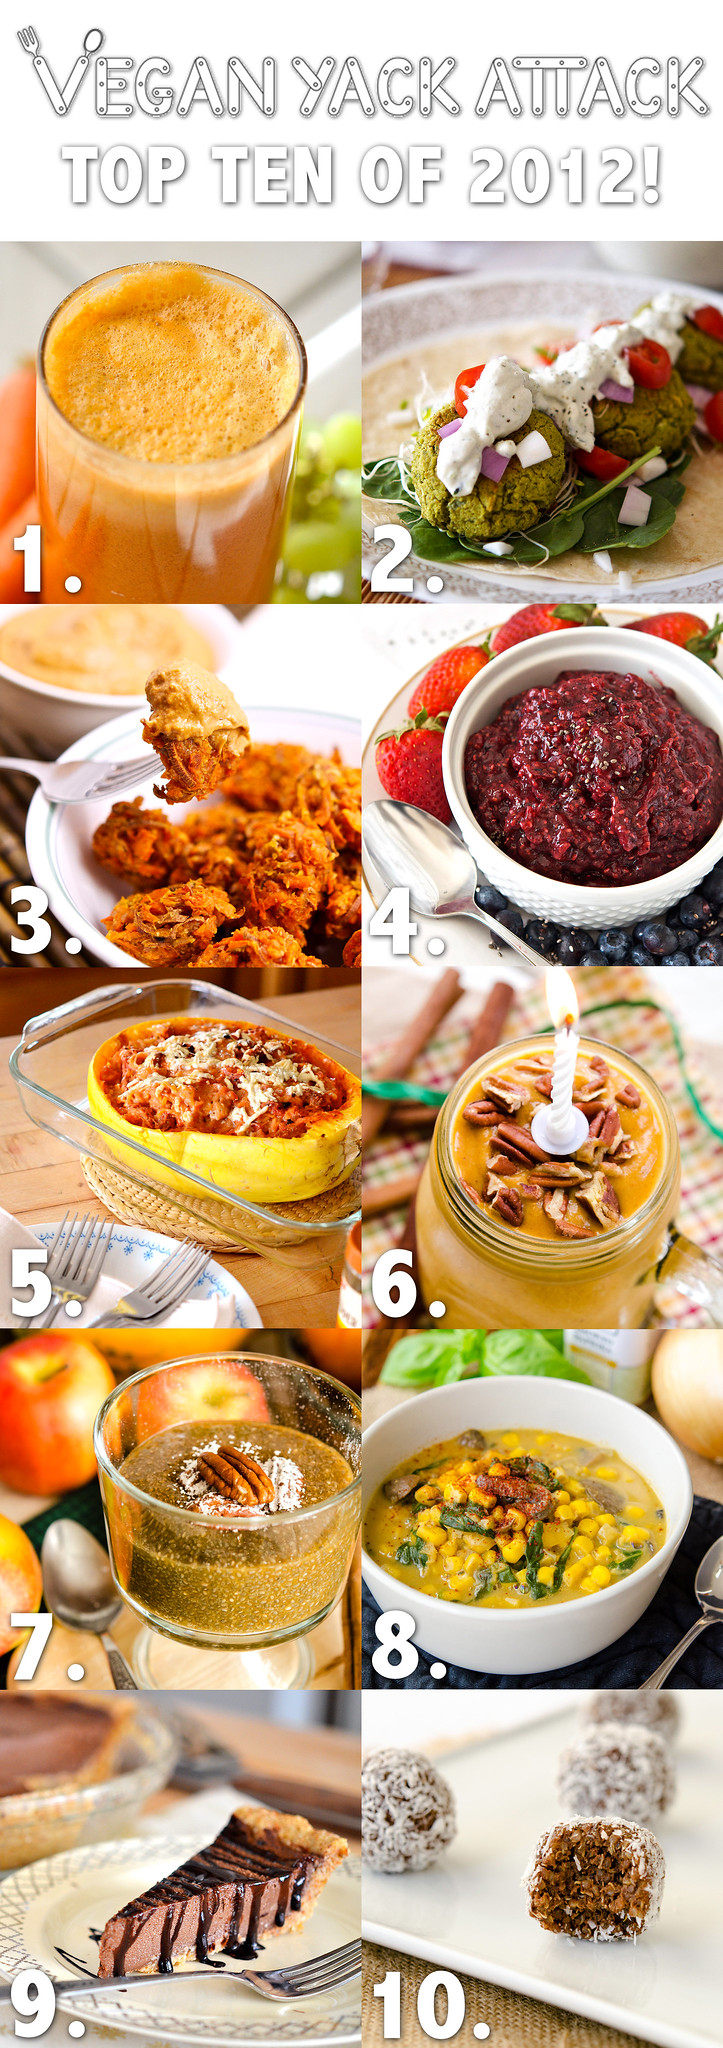 So, what I have for you today is a list of the Top 10 recipes of 2012; plus, how my year has gone, and what I would like to do in 2013.